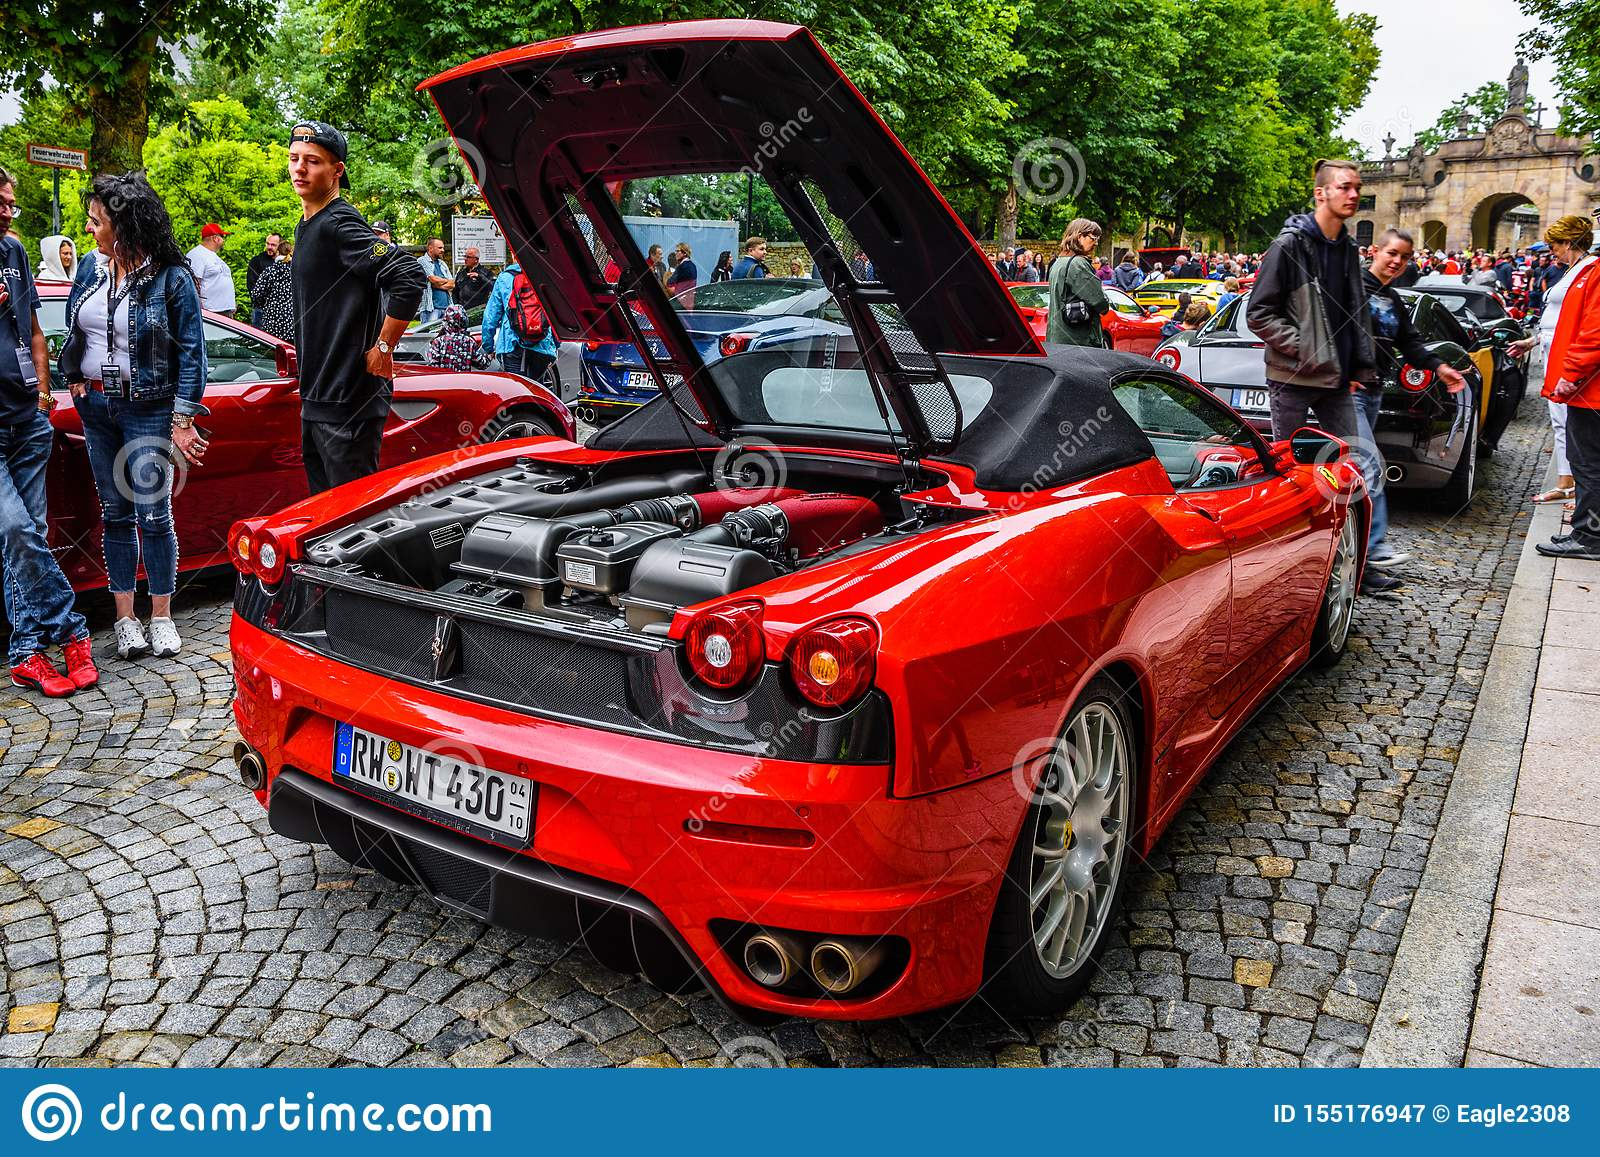 Germany Fulda Jul 2019 Motor Of Red Ferrari F430 Type F131 Cabrio Is A Sports Car Produced By The Italian Automobile Editorial Photography Image Of Enzo Luxury 155176947